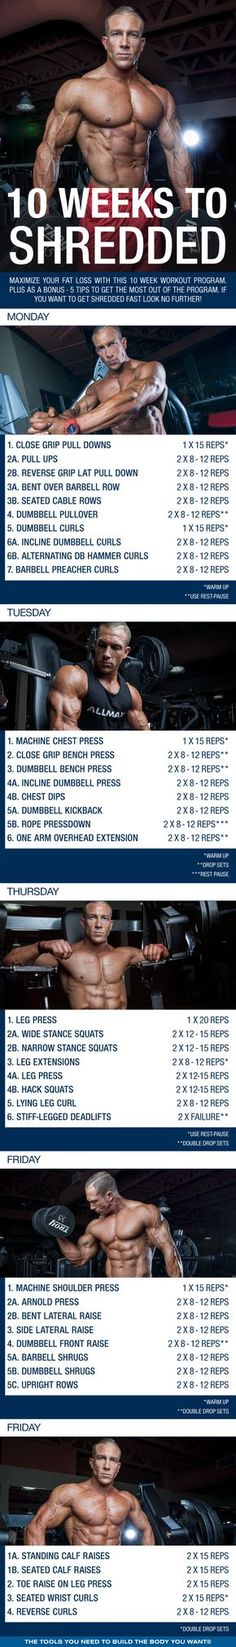 10 Weeks to Shredded: Maximize Your Fat Loss with this Workout - - Maximize your fat loss with this 10 week shred workout program. Plus as a bonus - 5 tips to get the most fat loss out of the program! Wöchentliches Training, Fitness Studio Training, Training Programs, Weight Training, Workout Programs, Shred Workout, 10 Week Workout, Workout Men, Fitness Workouts